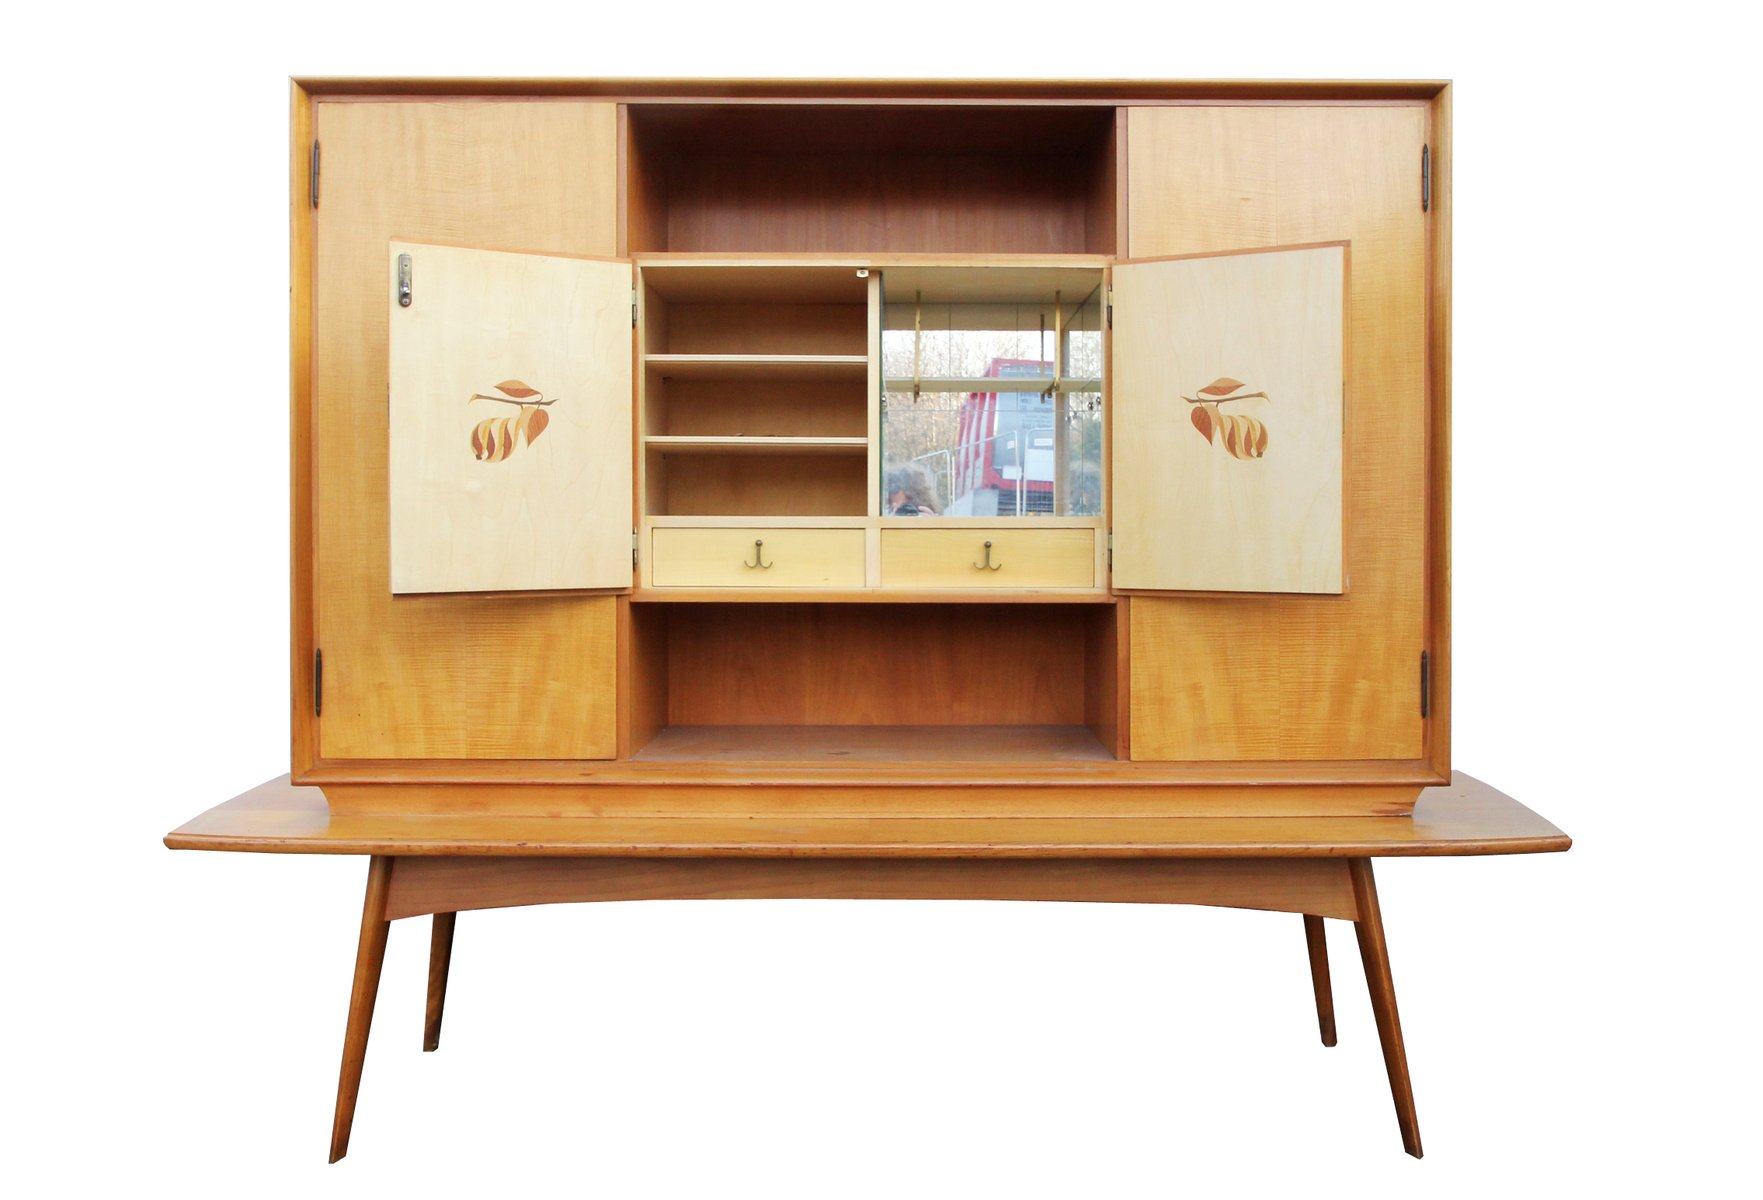 German Cherry Wood Bar Cabinet for sale at Pamono